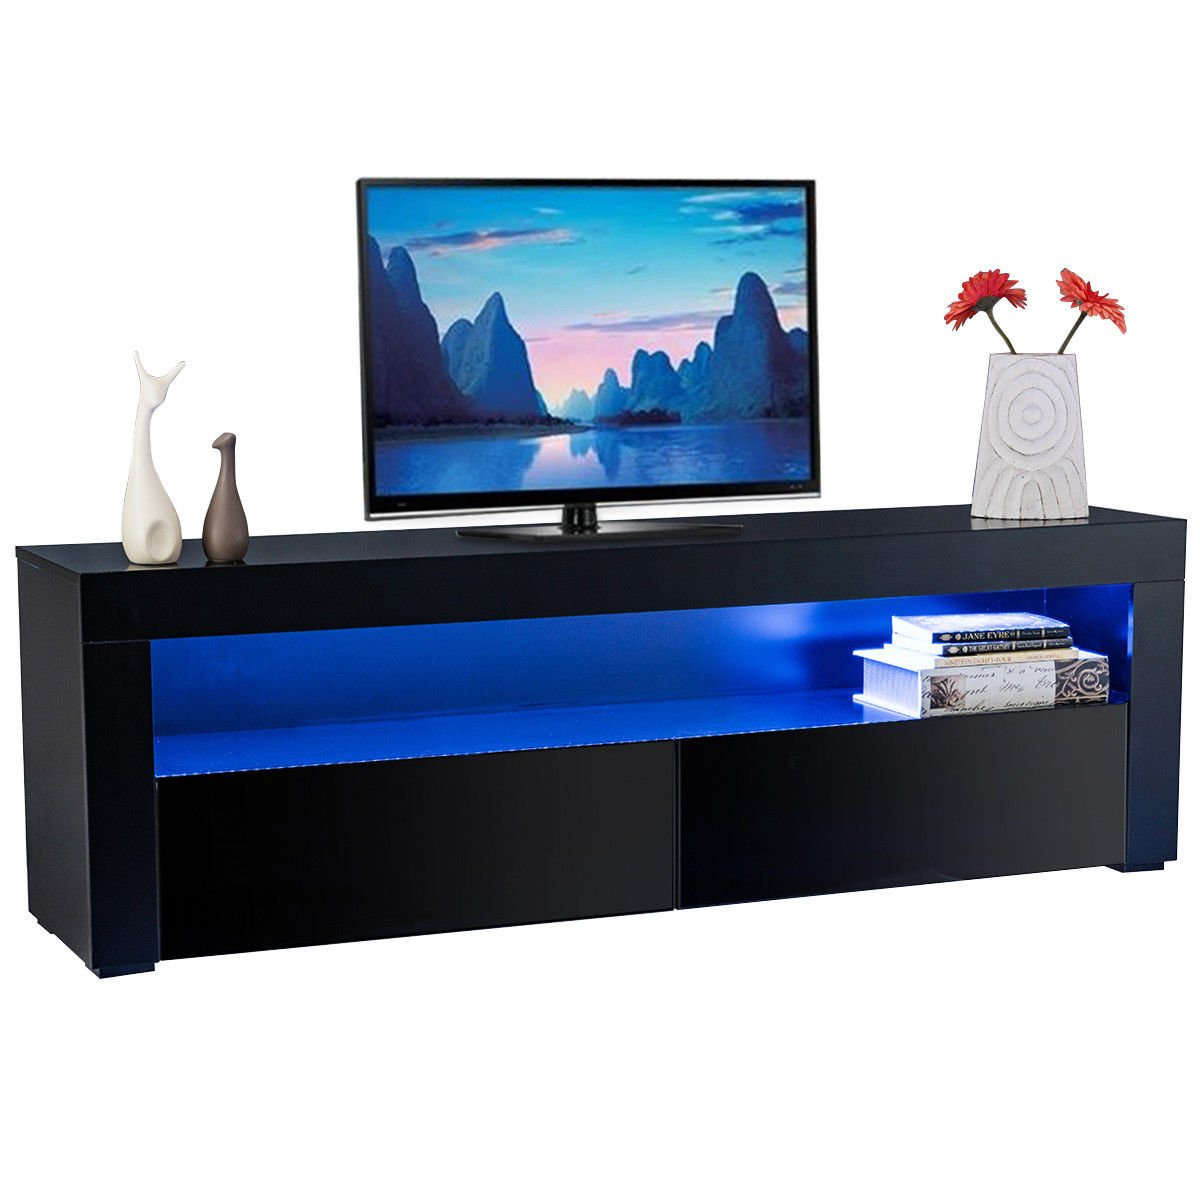 Tangkula Modern TV Stand High Gloss Media Console Cabinet Entertainment Center with LED Shelf and Drawers (Black)